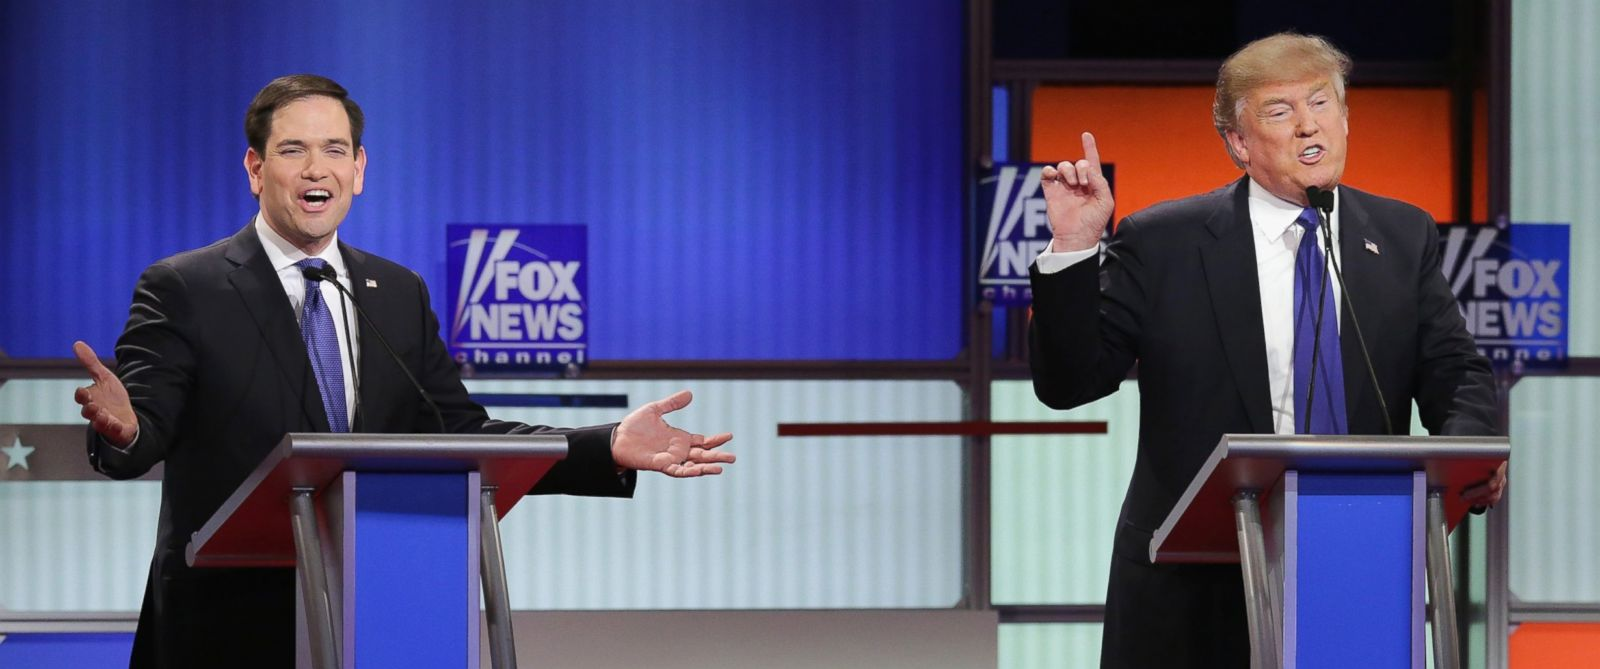 PHOTO: Republican presidential candidates Sen. Marco Rubio and Donald Trump participate in a debate sponsored by Fox News at the Fox Theatre on March 3, 2016 in Detroit.